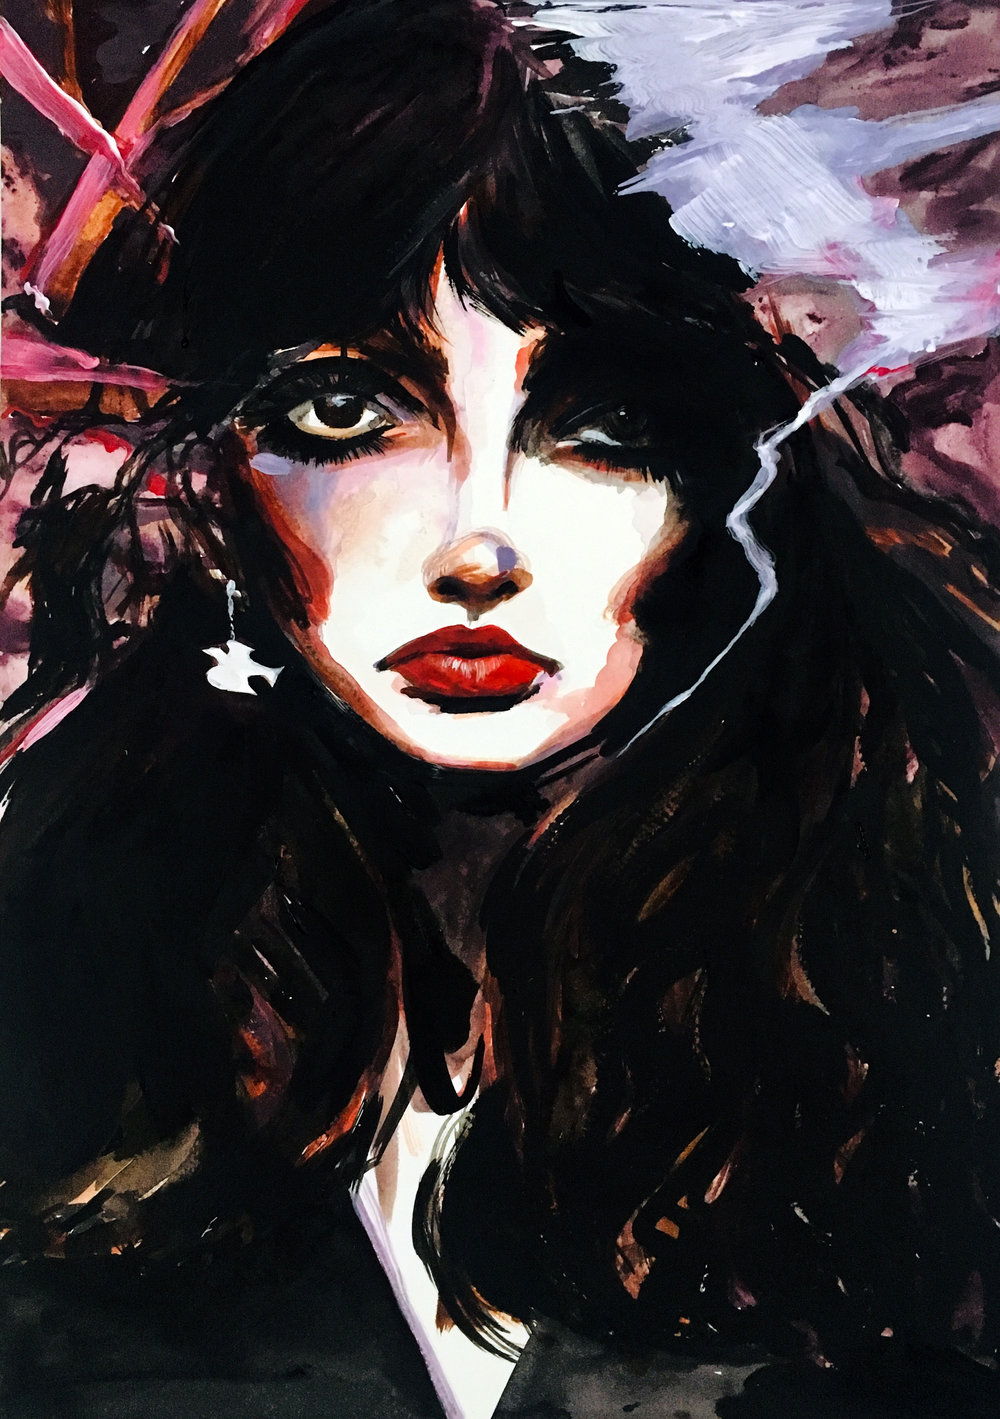 Cloudbusting - Acrylic painting on paperA3 (29.7x42cm)£400